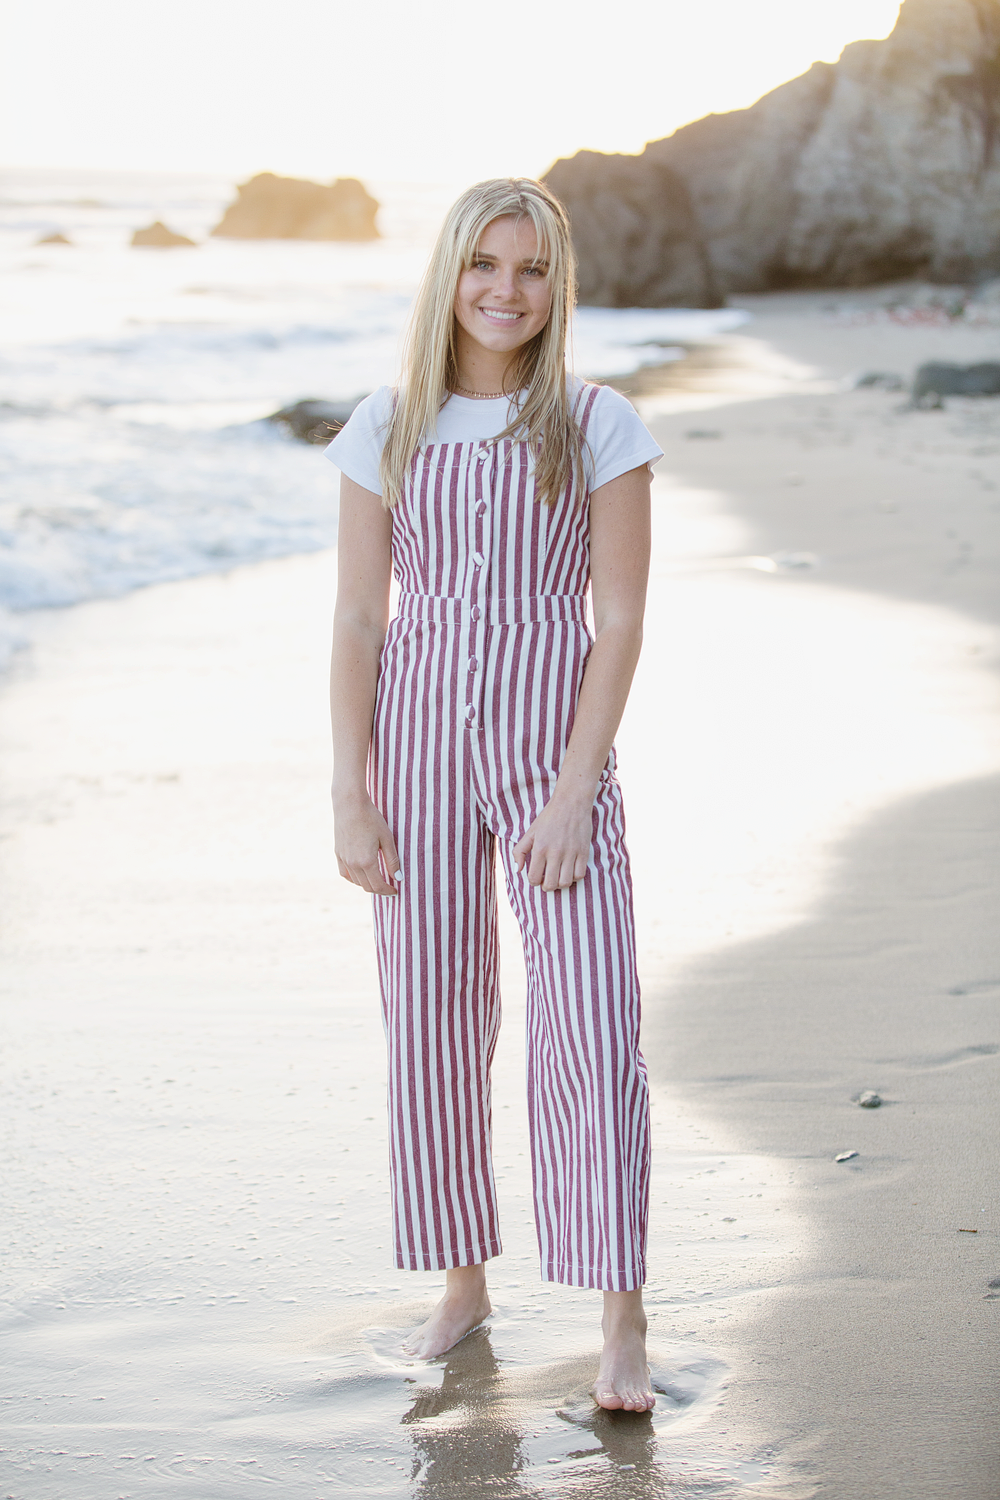 Malibu senior photographer